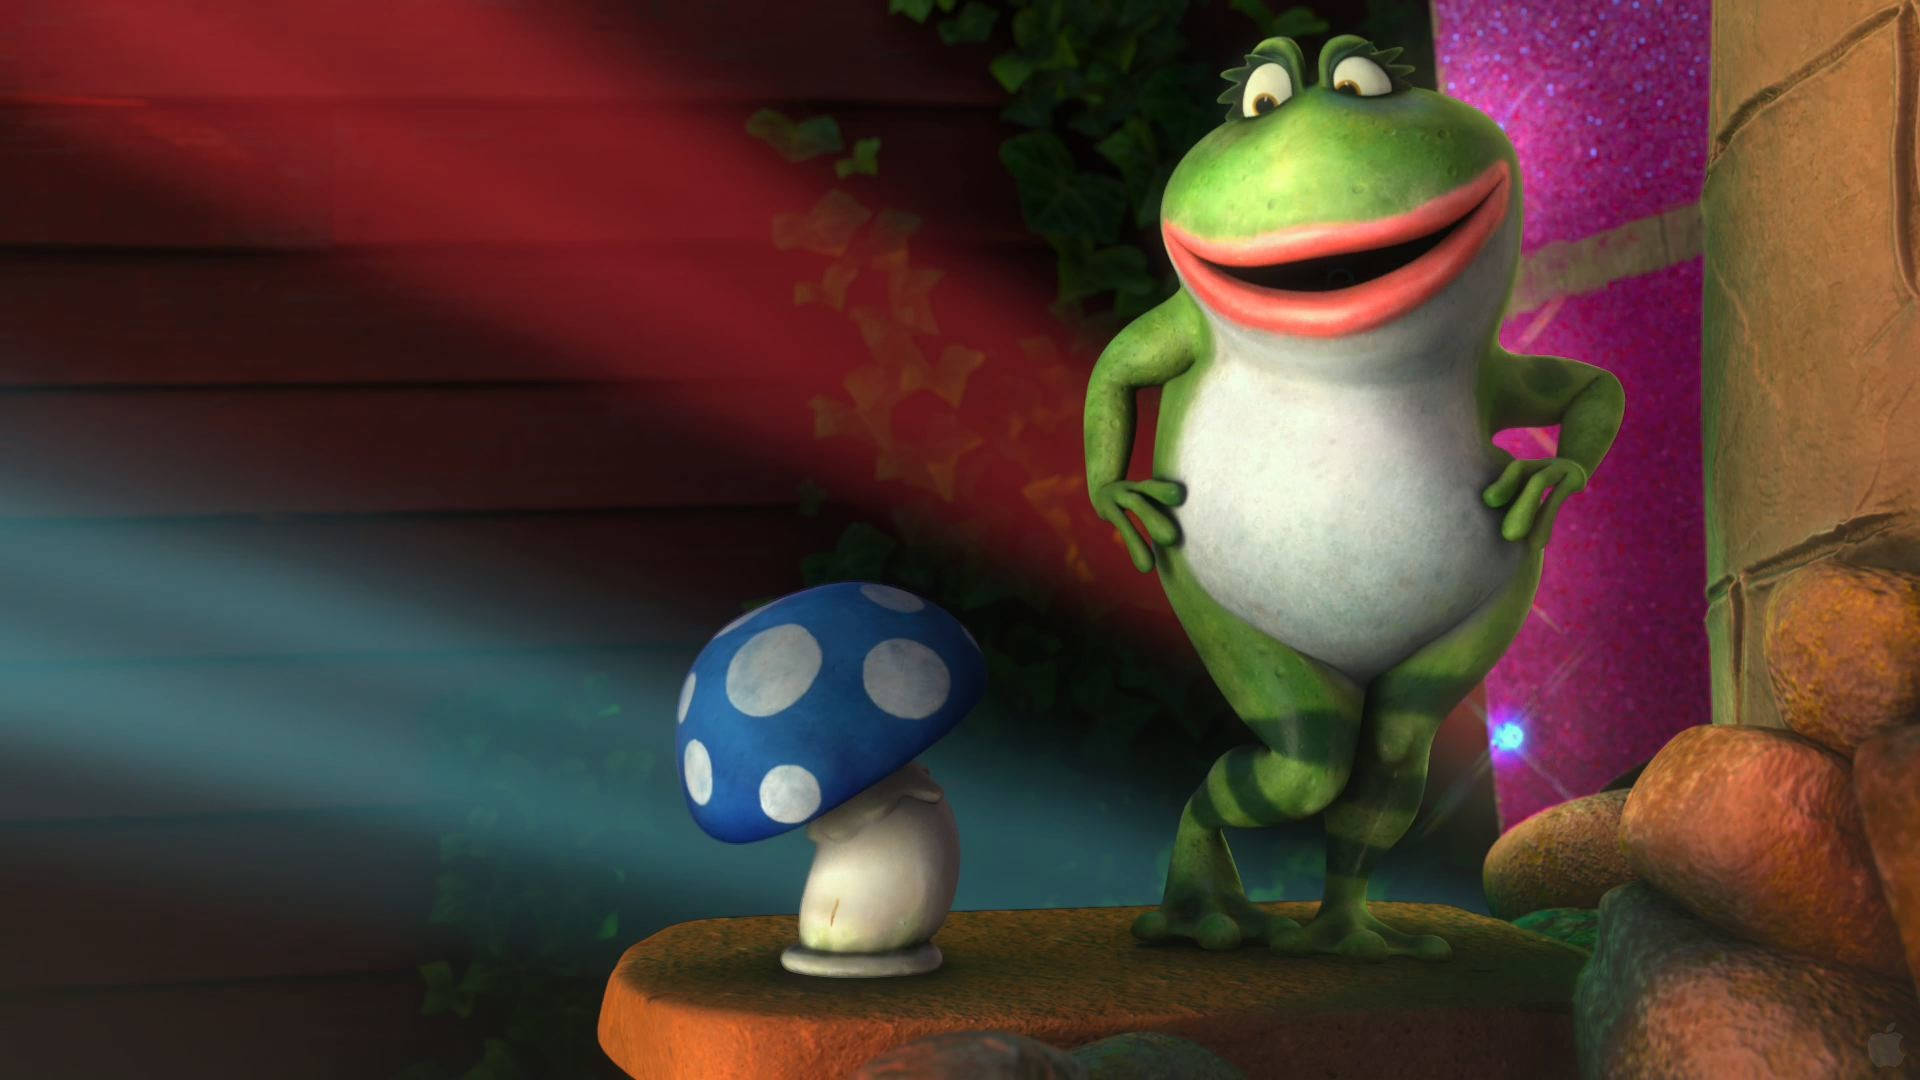 Res: 1920x1080, Nanette and Shroom from Disney's Gnomeo and Juliet movie wallpaper